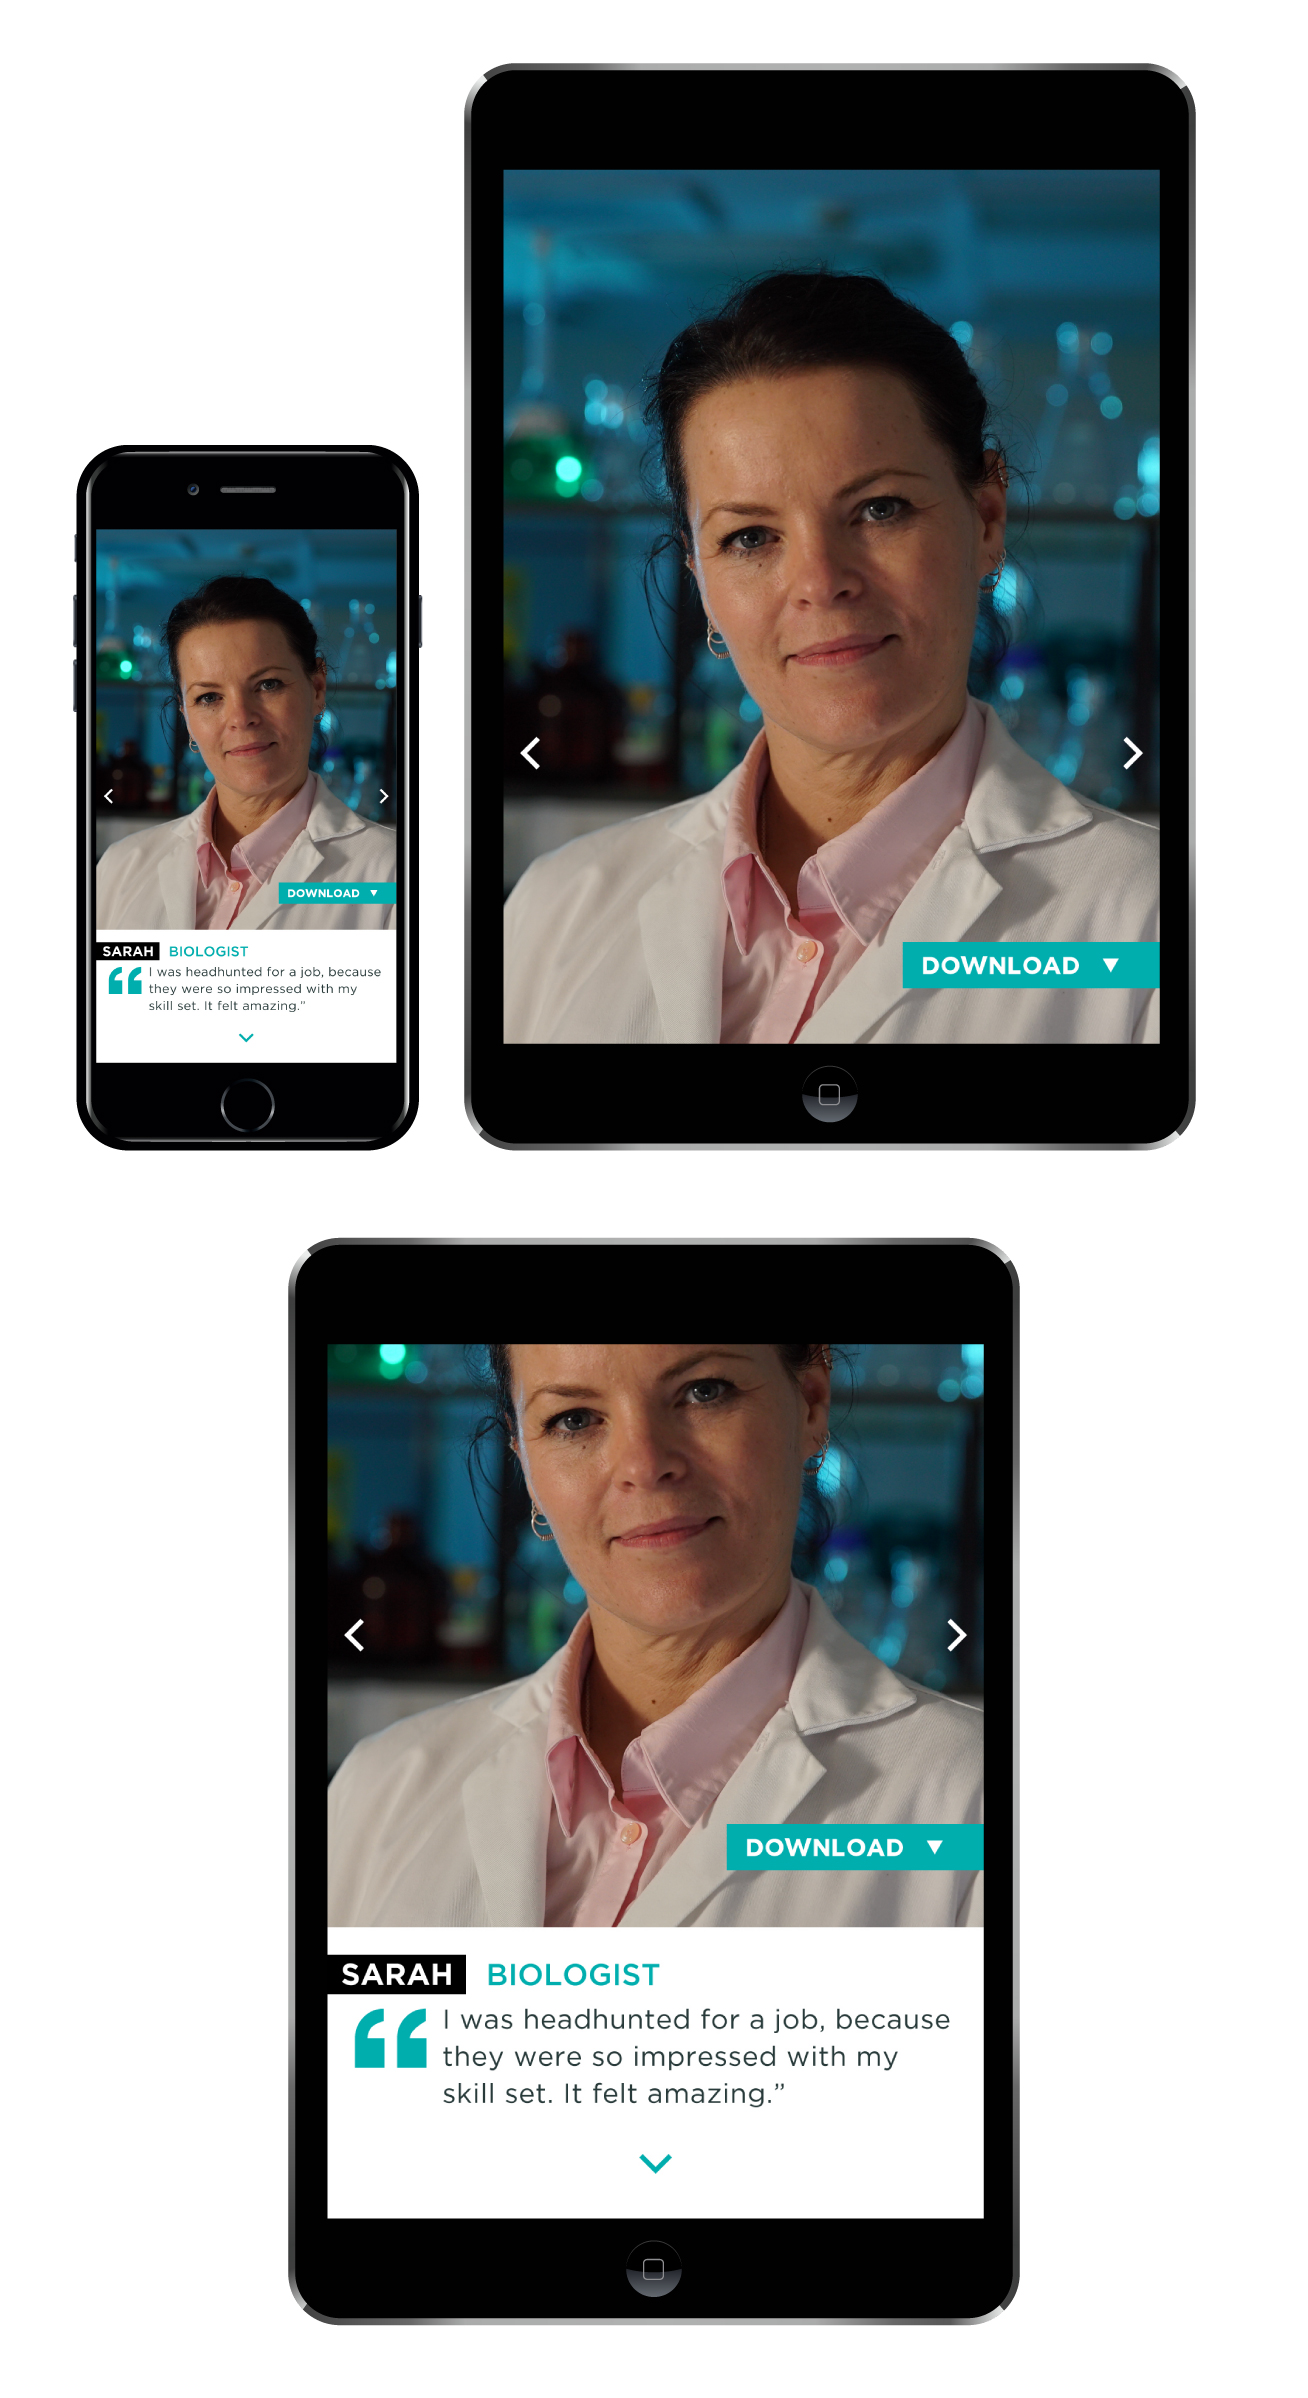 How the images display on mobile and tablet